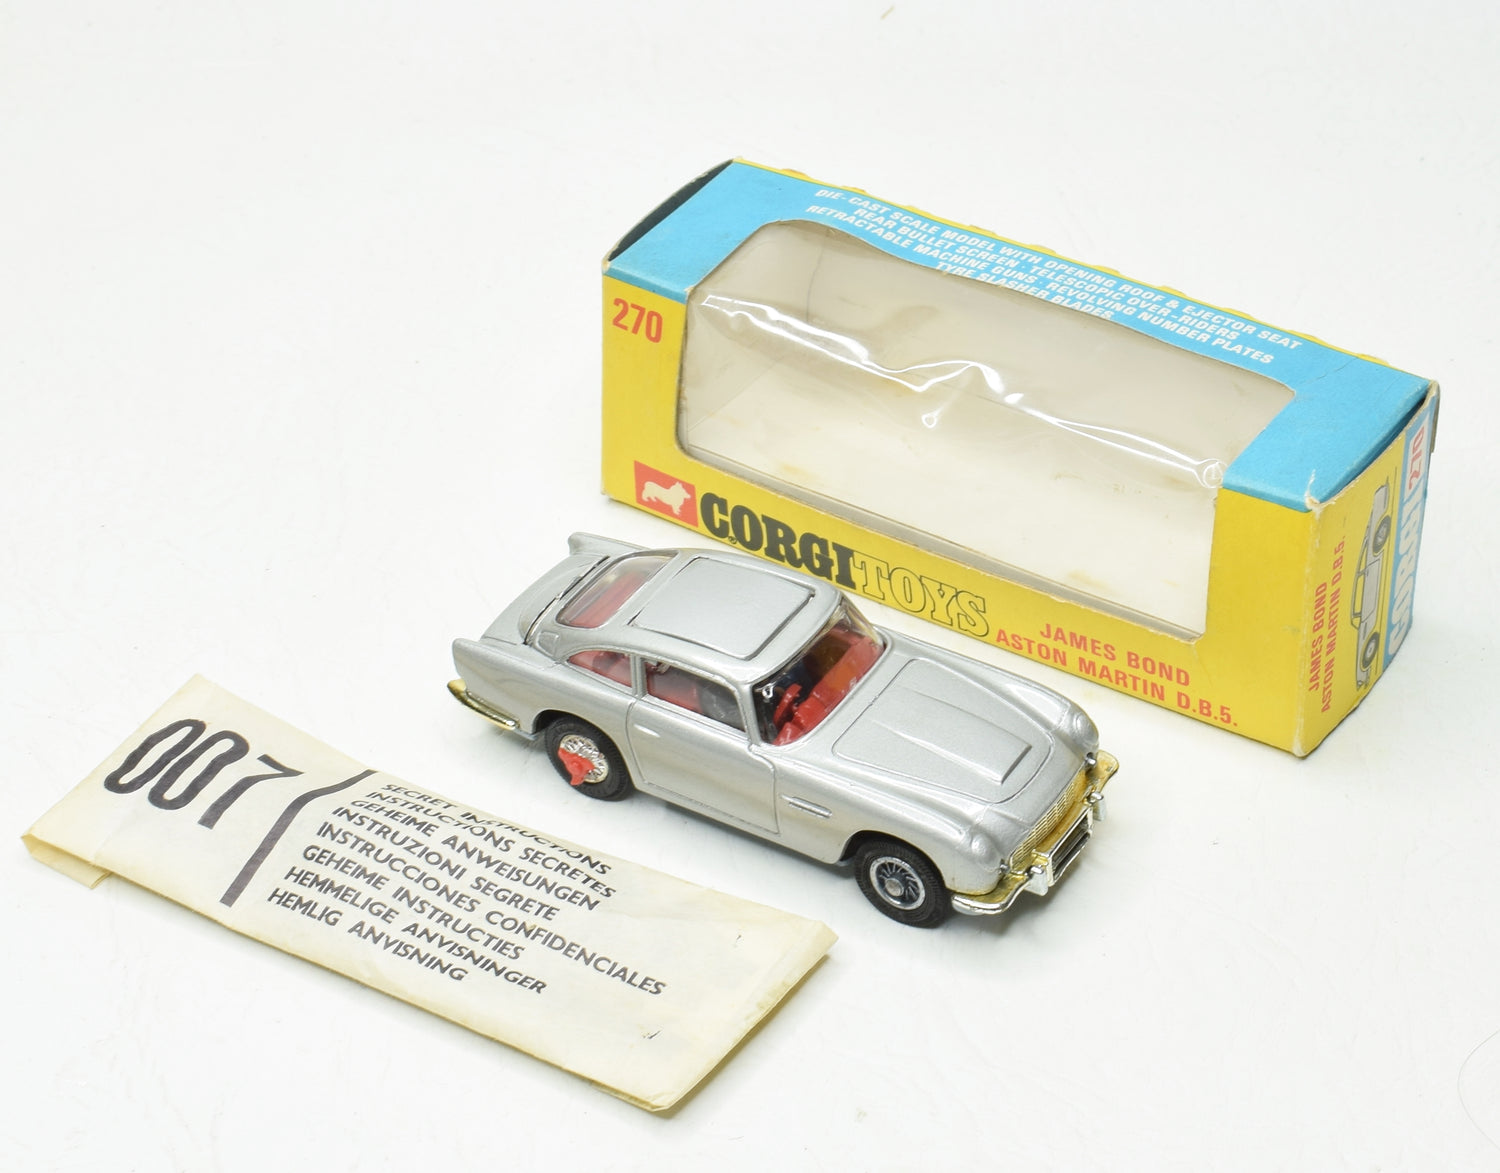 Corgi Toys 270 James Bond DB5 Very Near Mint/Boxed 'The Lane' Collection